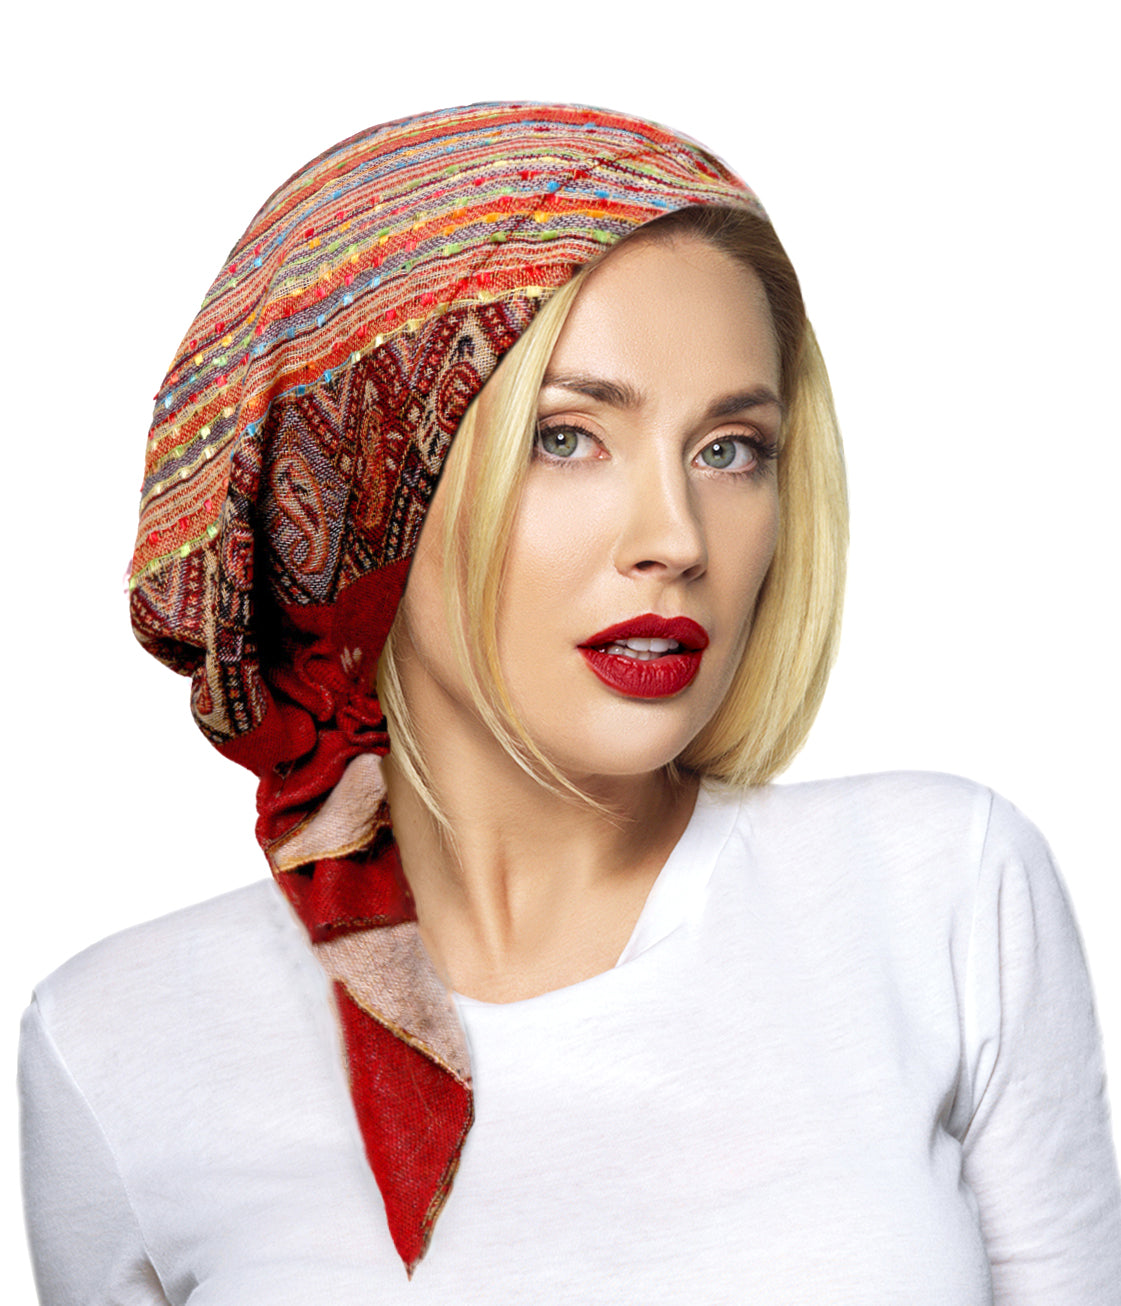 Boho chic cashmere headscarf in burnt sienna red